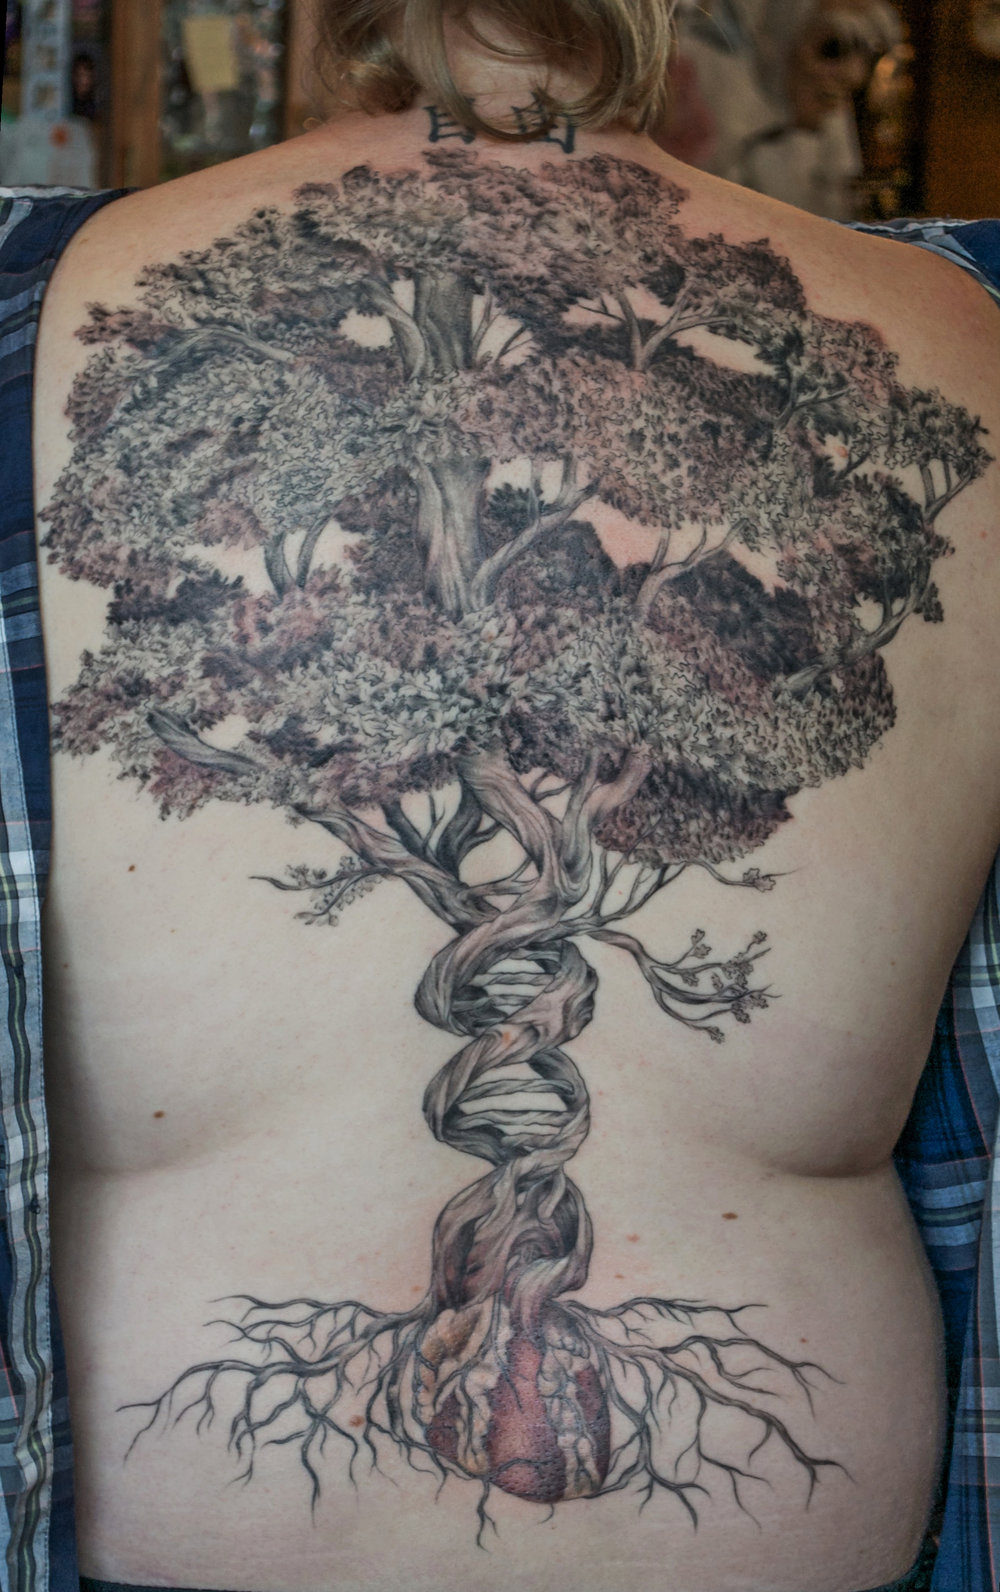 DNA heart tree tattoo.jpg